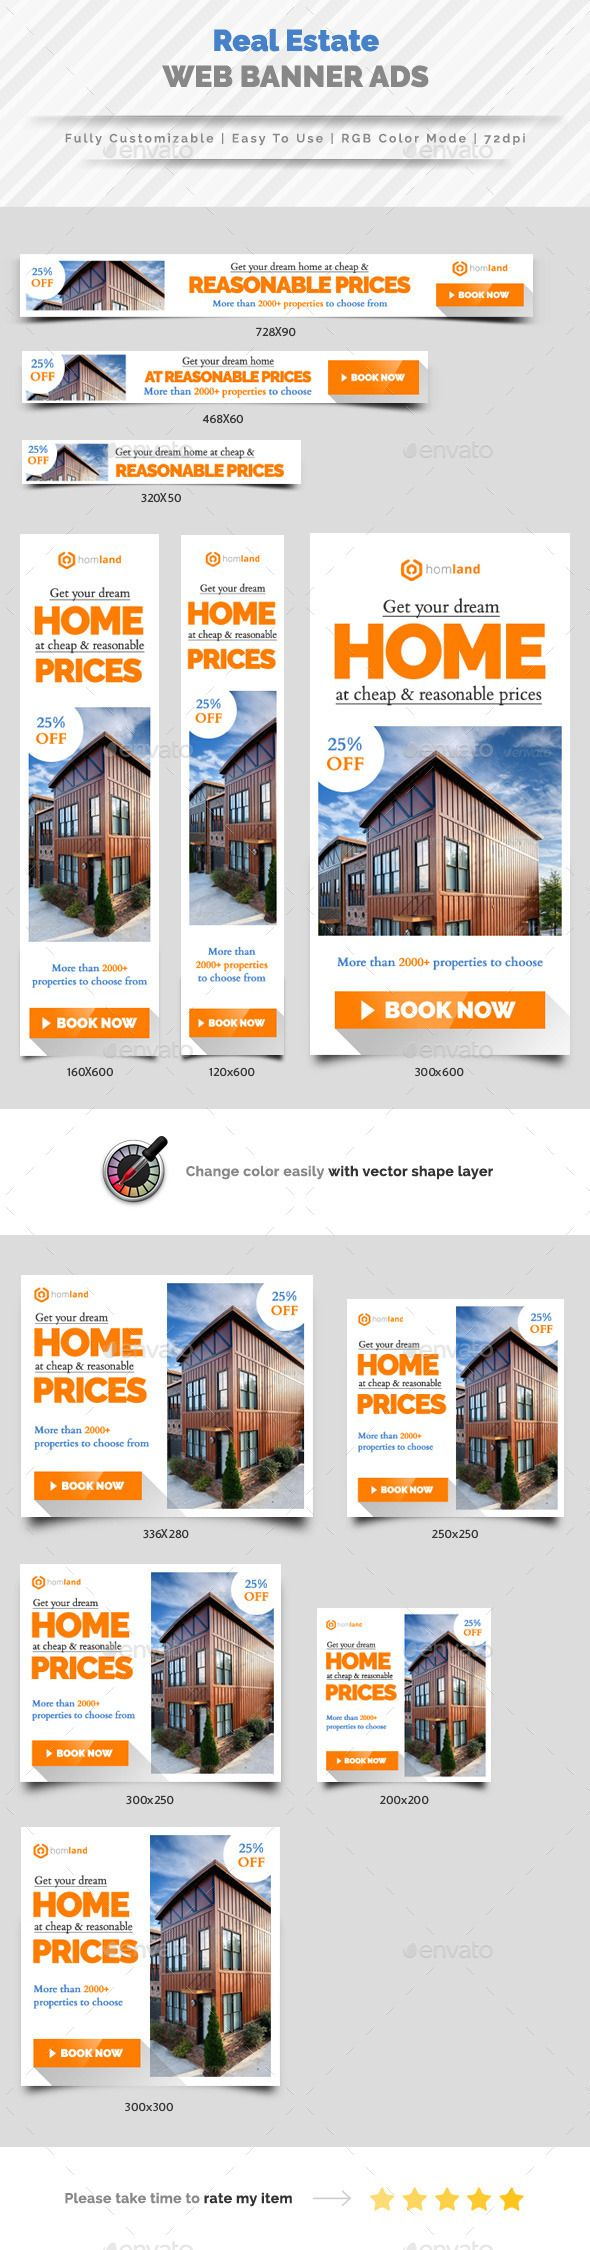 Real Estate Agency Web Banner Ads Template PSD #design Download: http://graphicriver.net/item/real-estate-agency-web-banner-ads/13689824?ref=ksioks